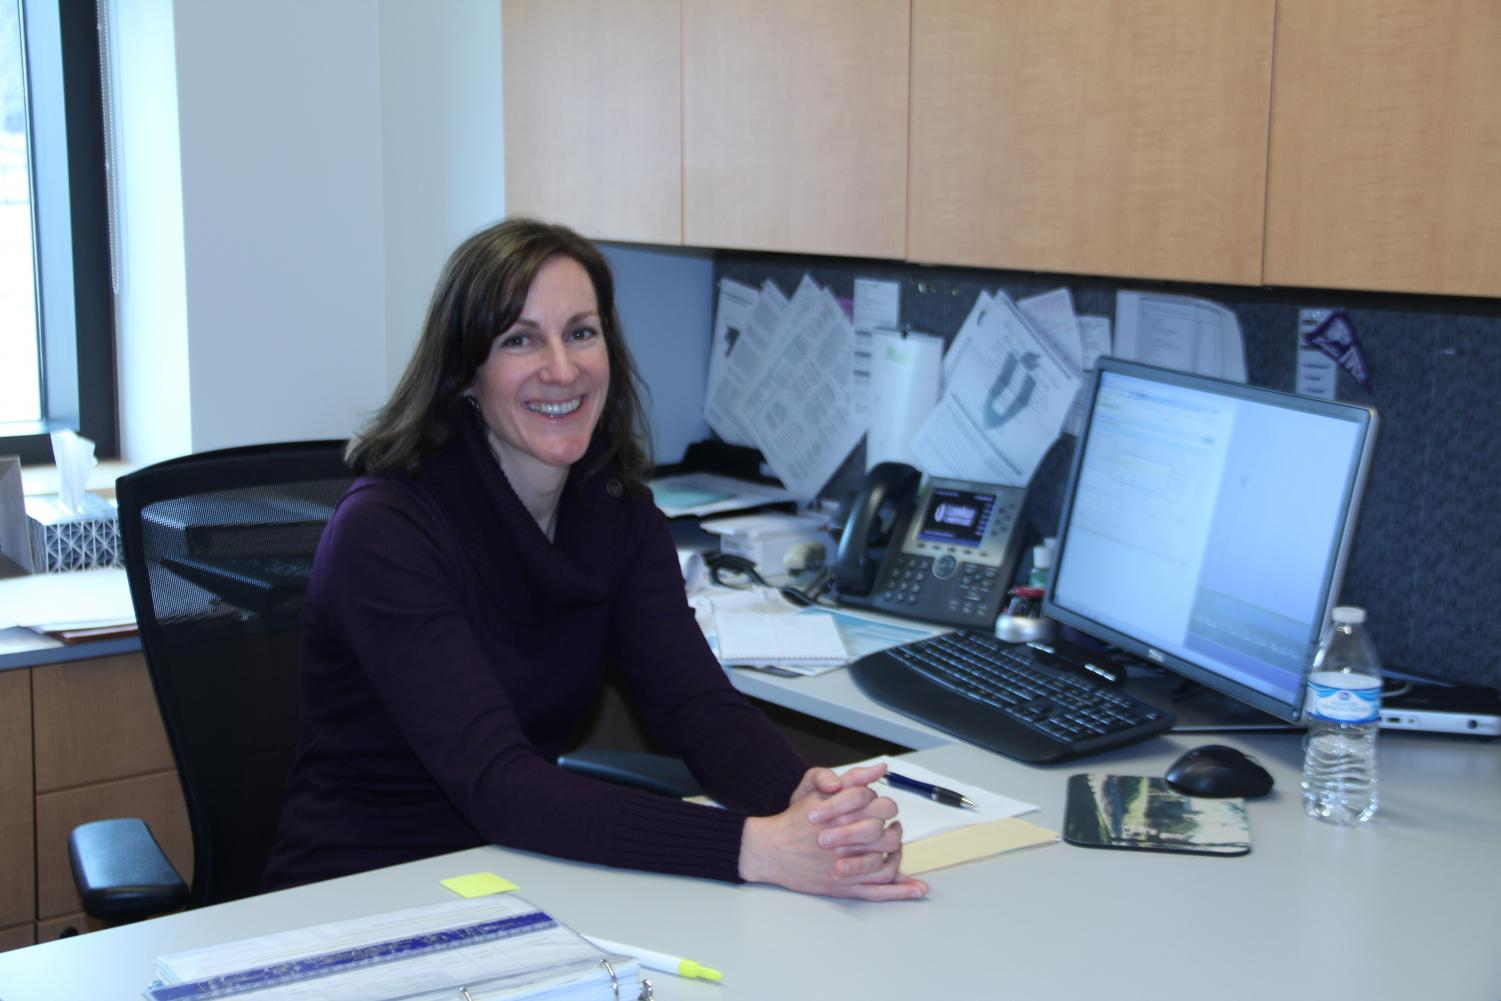 Helping others Amy Woods is IVCC's new financial aid advisor. She started in her new role in January.